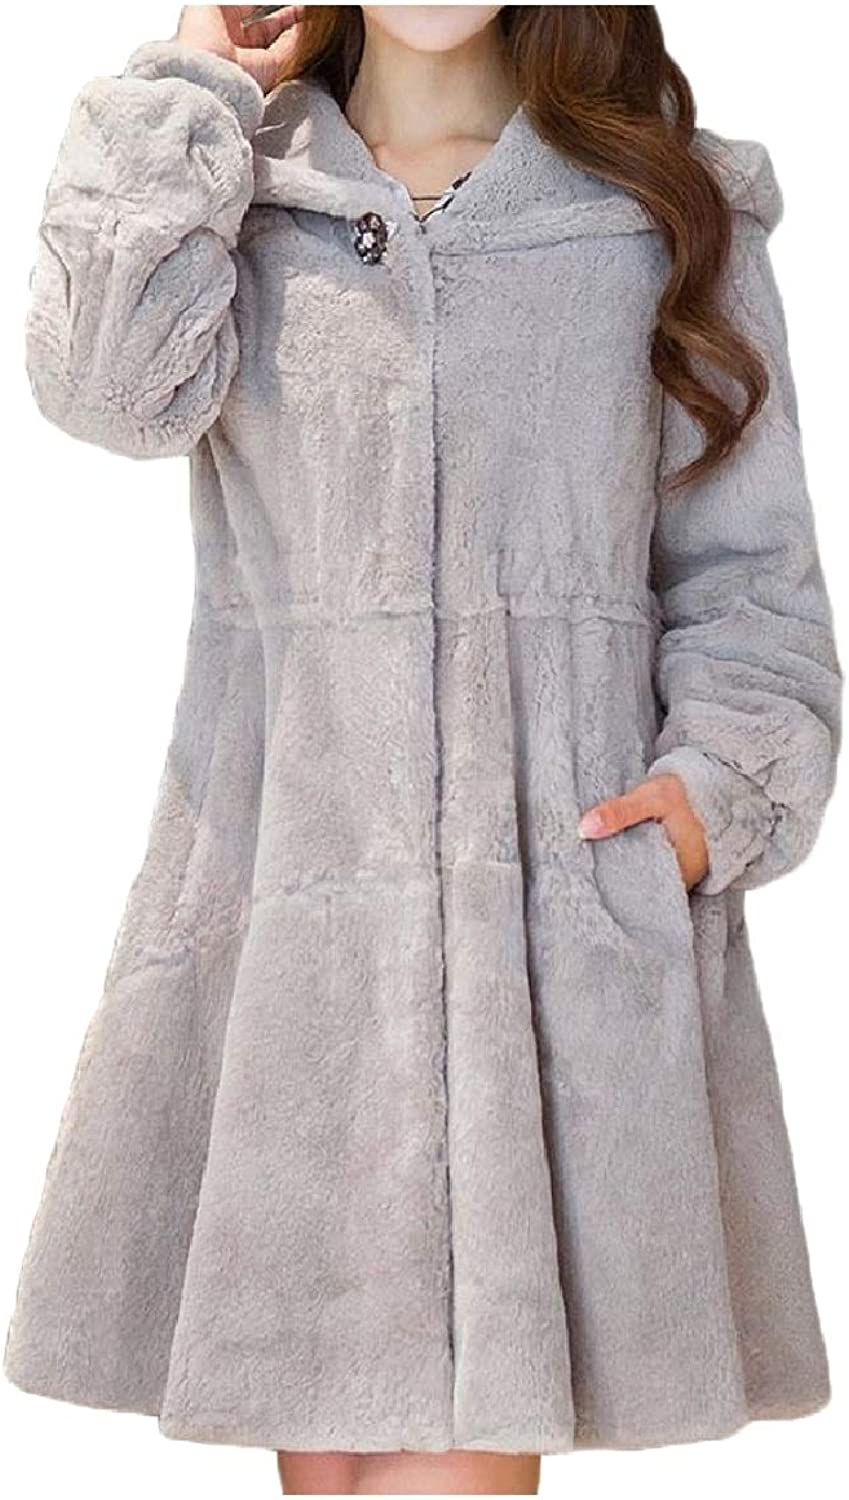 Baseby Women MidLong Fall Winter Faux Fur Hoodie Faux Fur Cardigan Coat